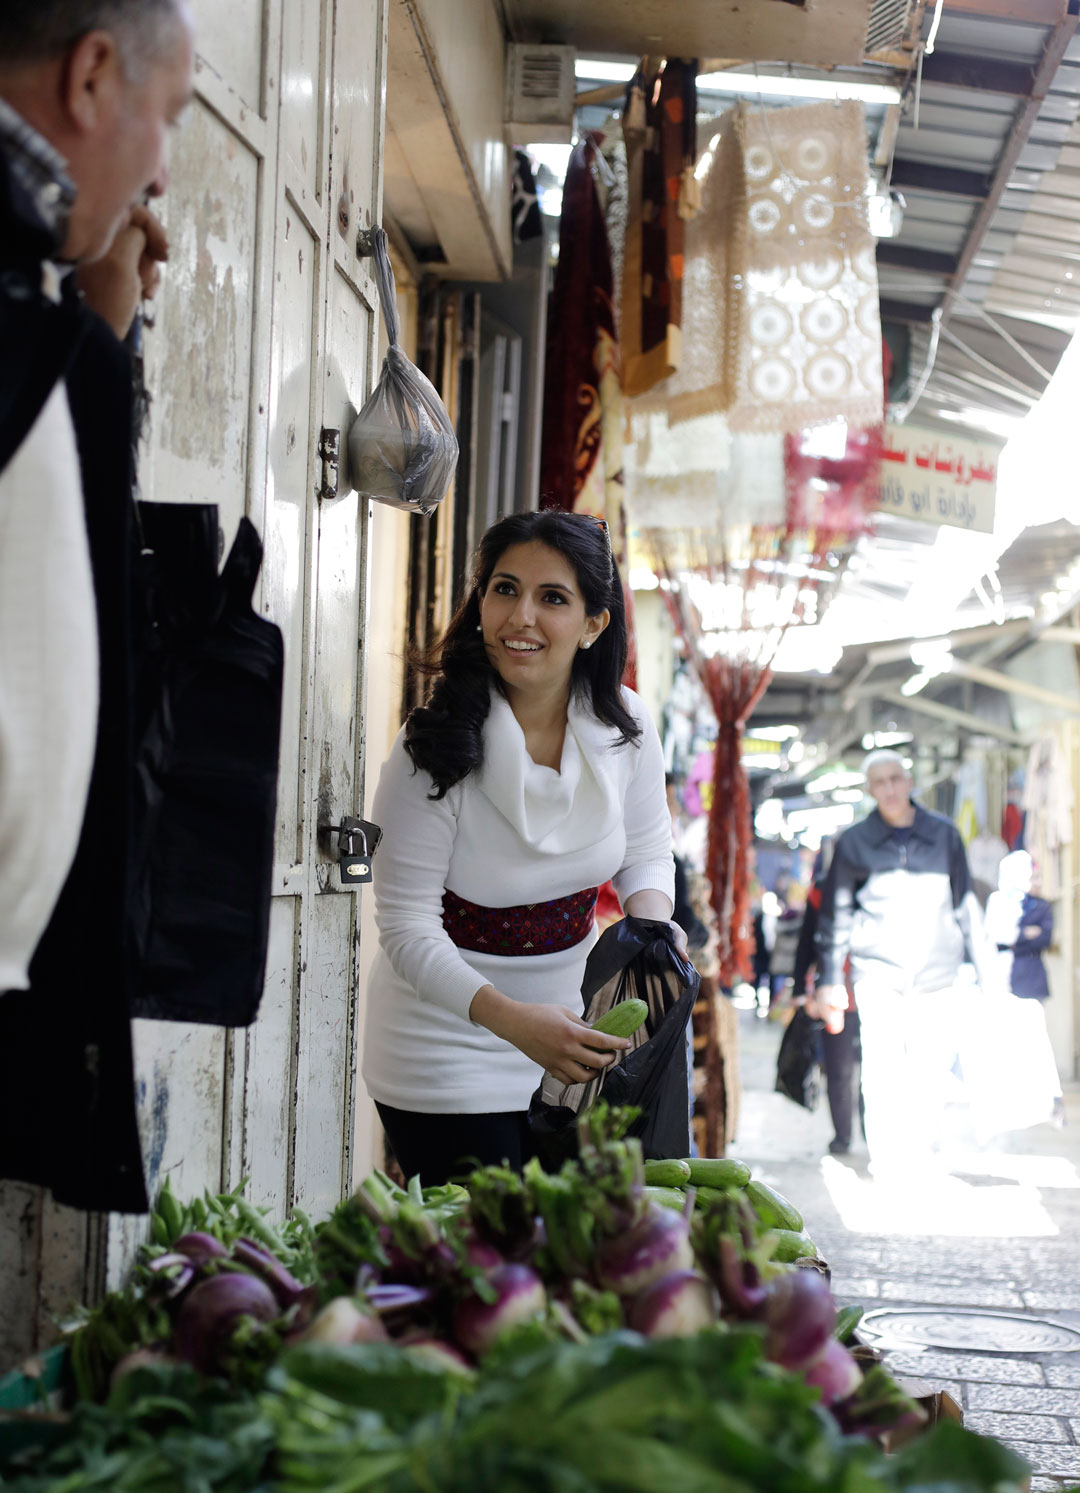 The Palestinian Table wins coveted First Book Award